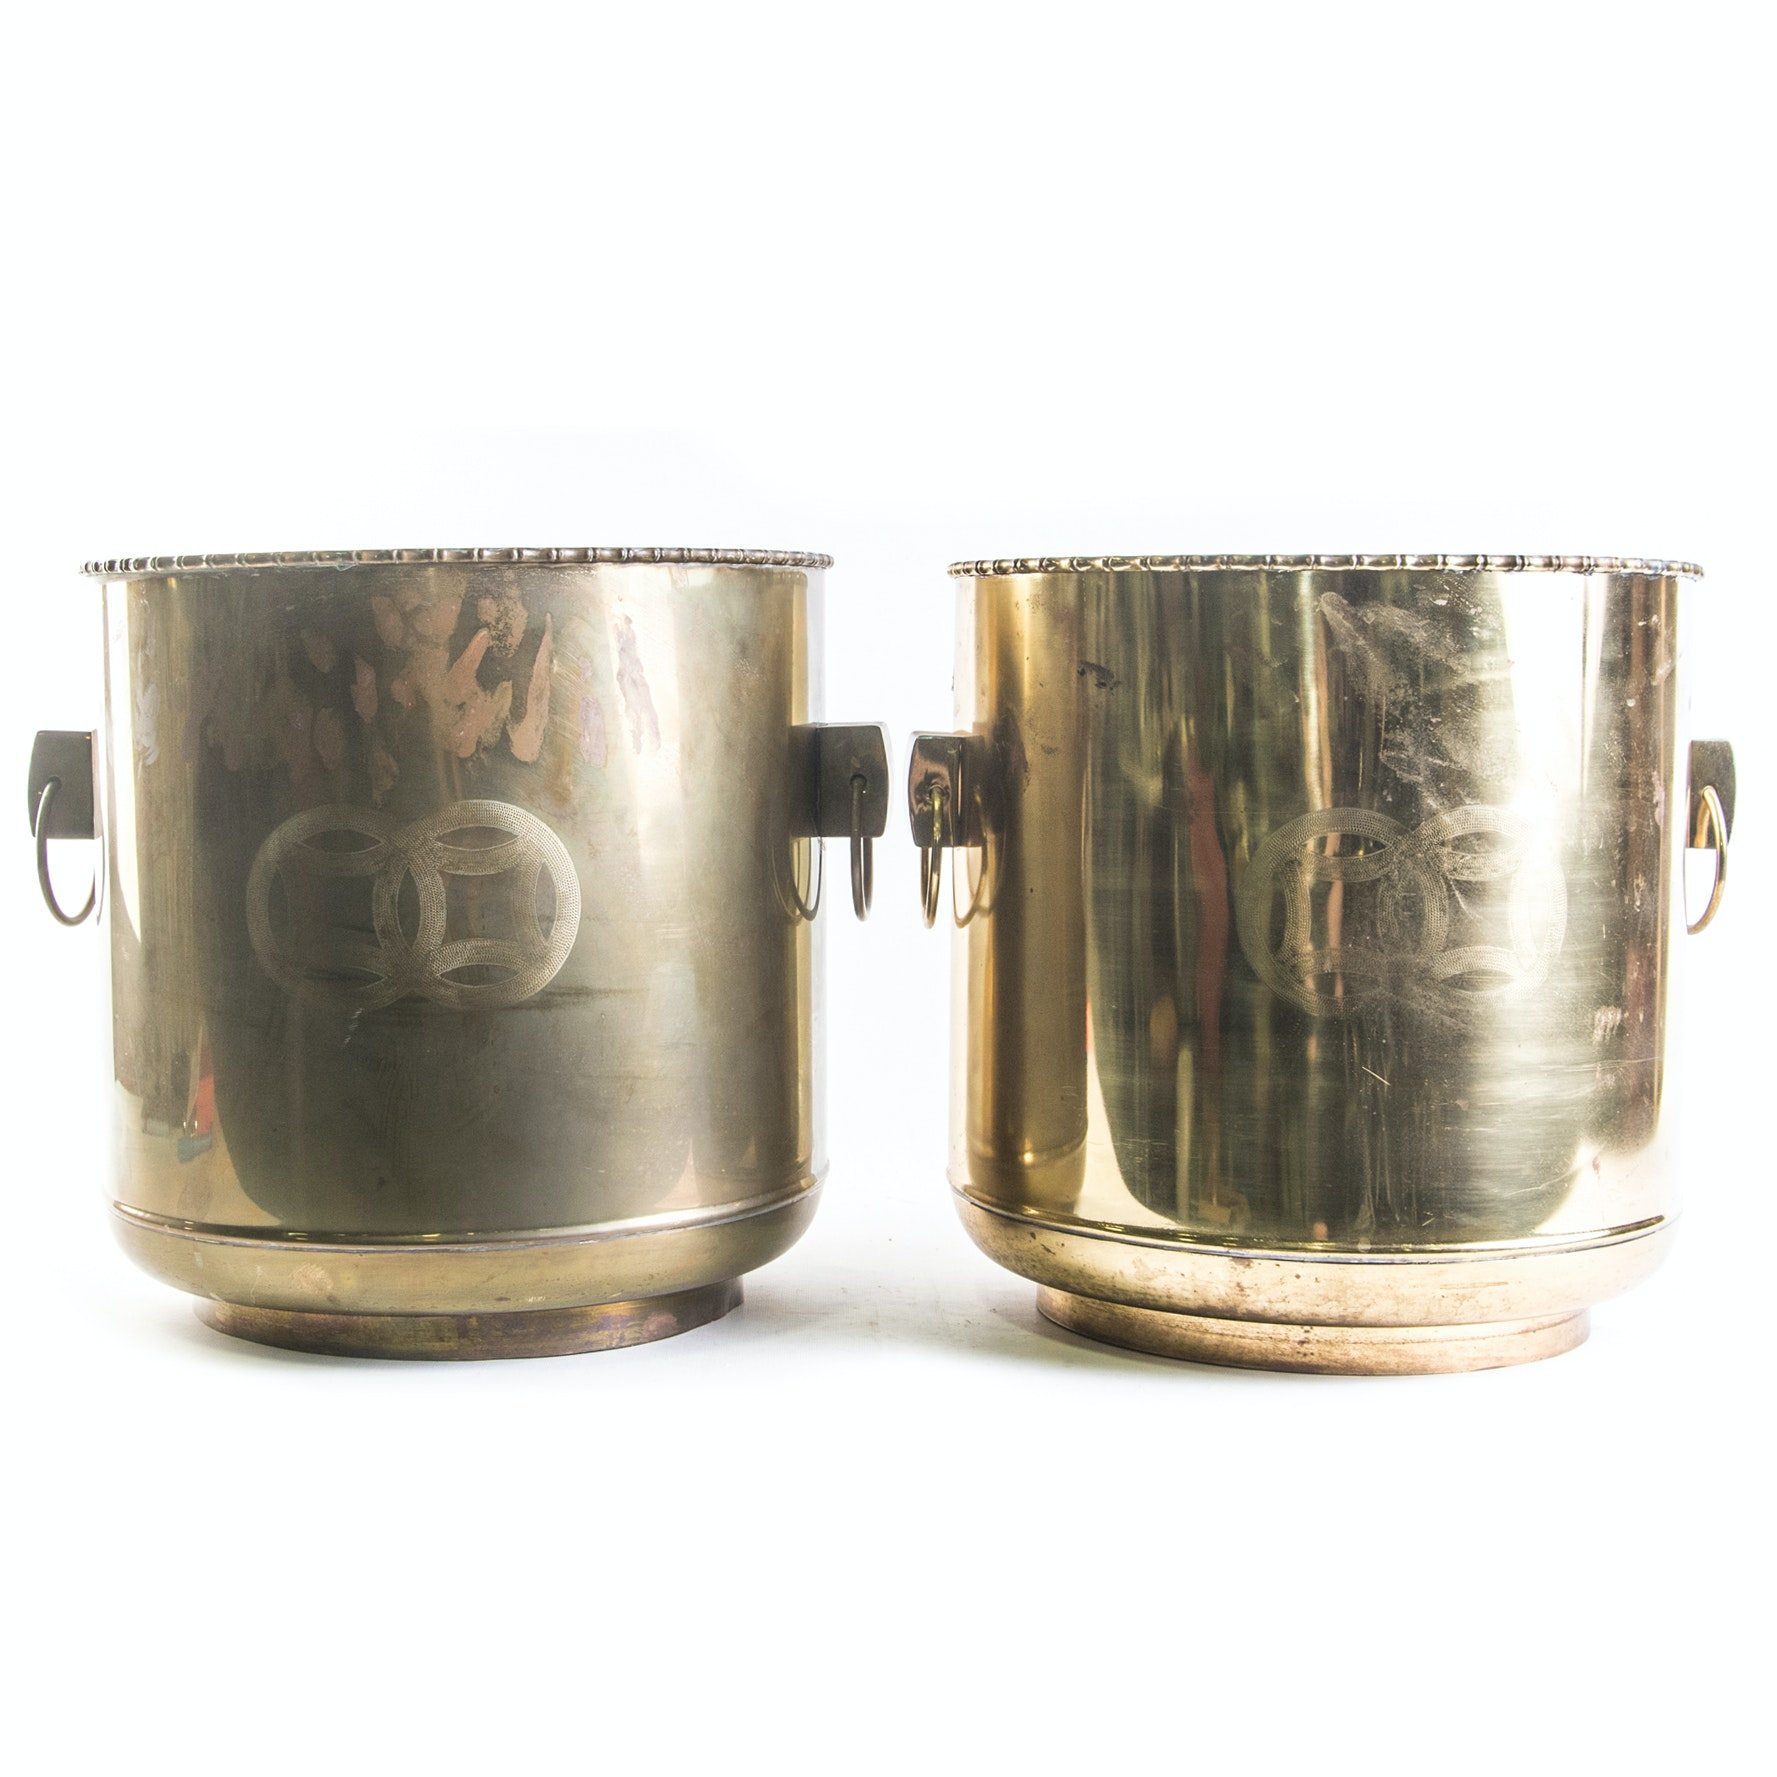 Vintage Chinese Inspired Brass Planters